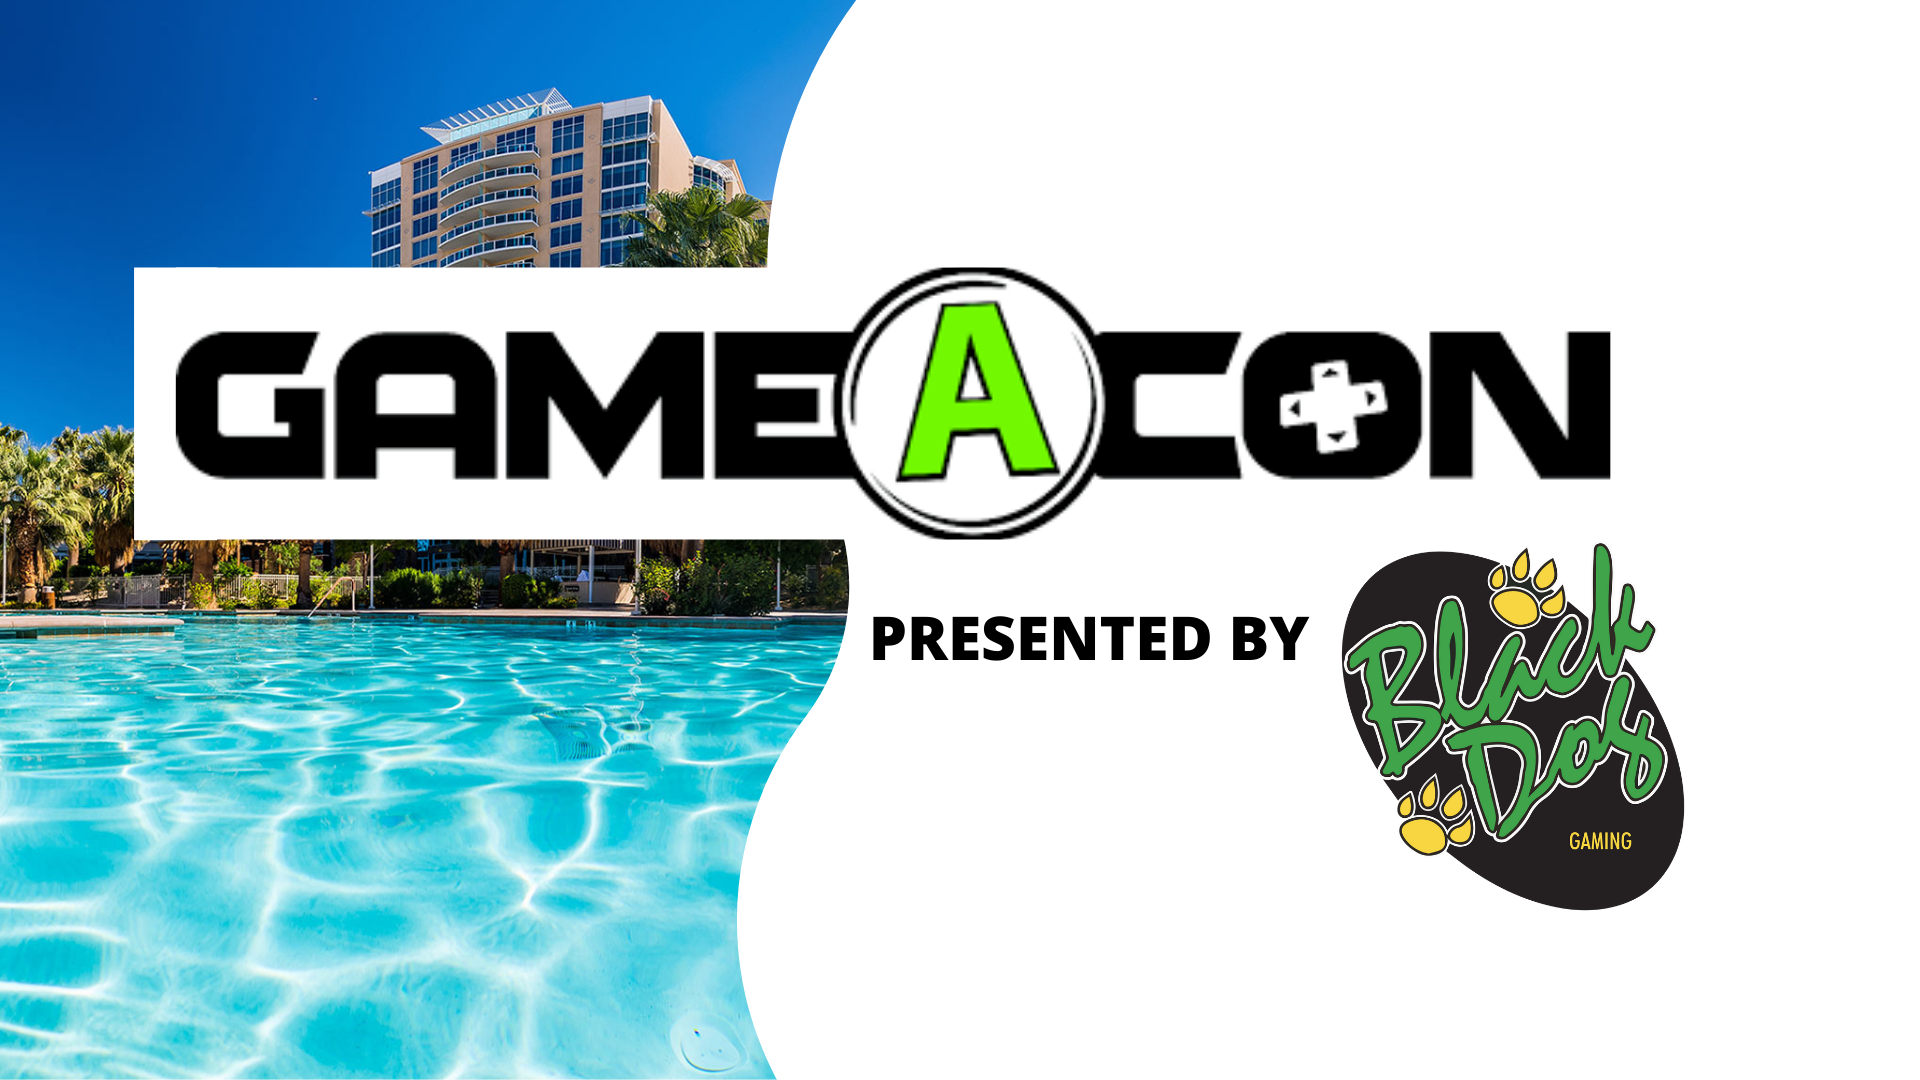 Gameacon and Black Dog Gaming to host Indie Game Developer Conference